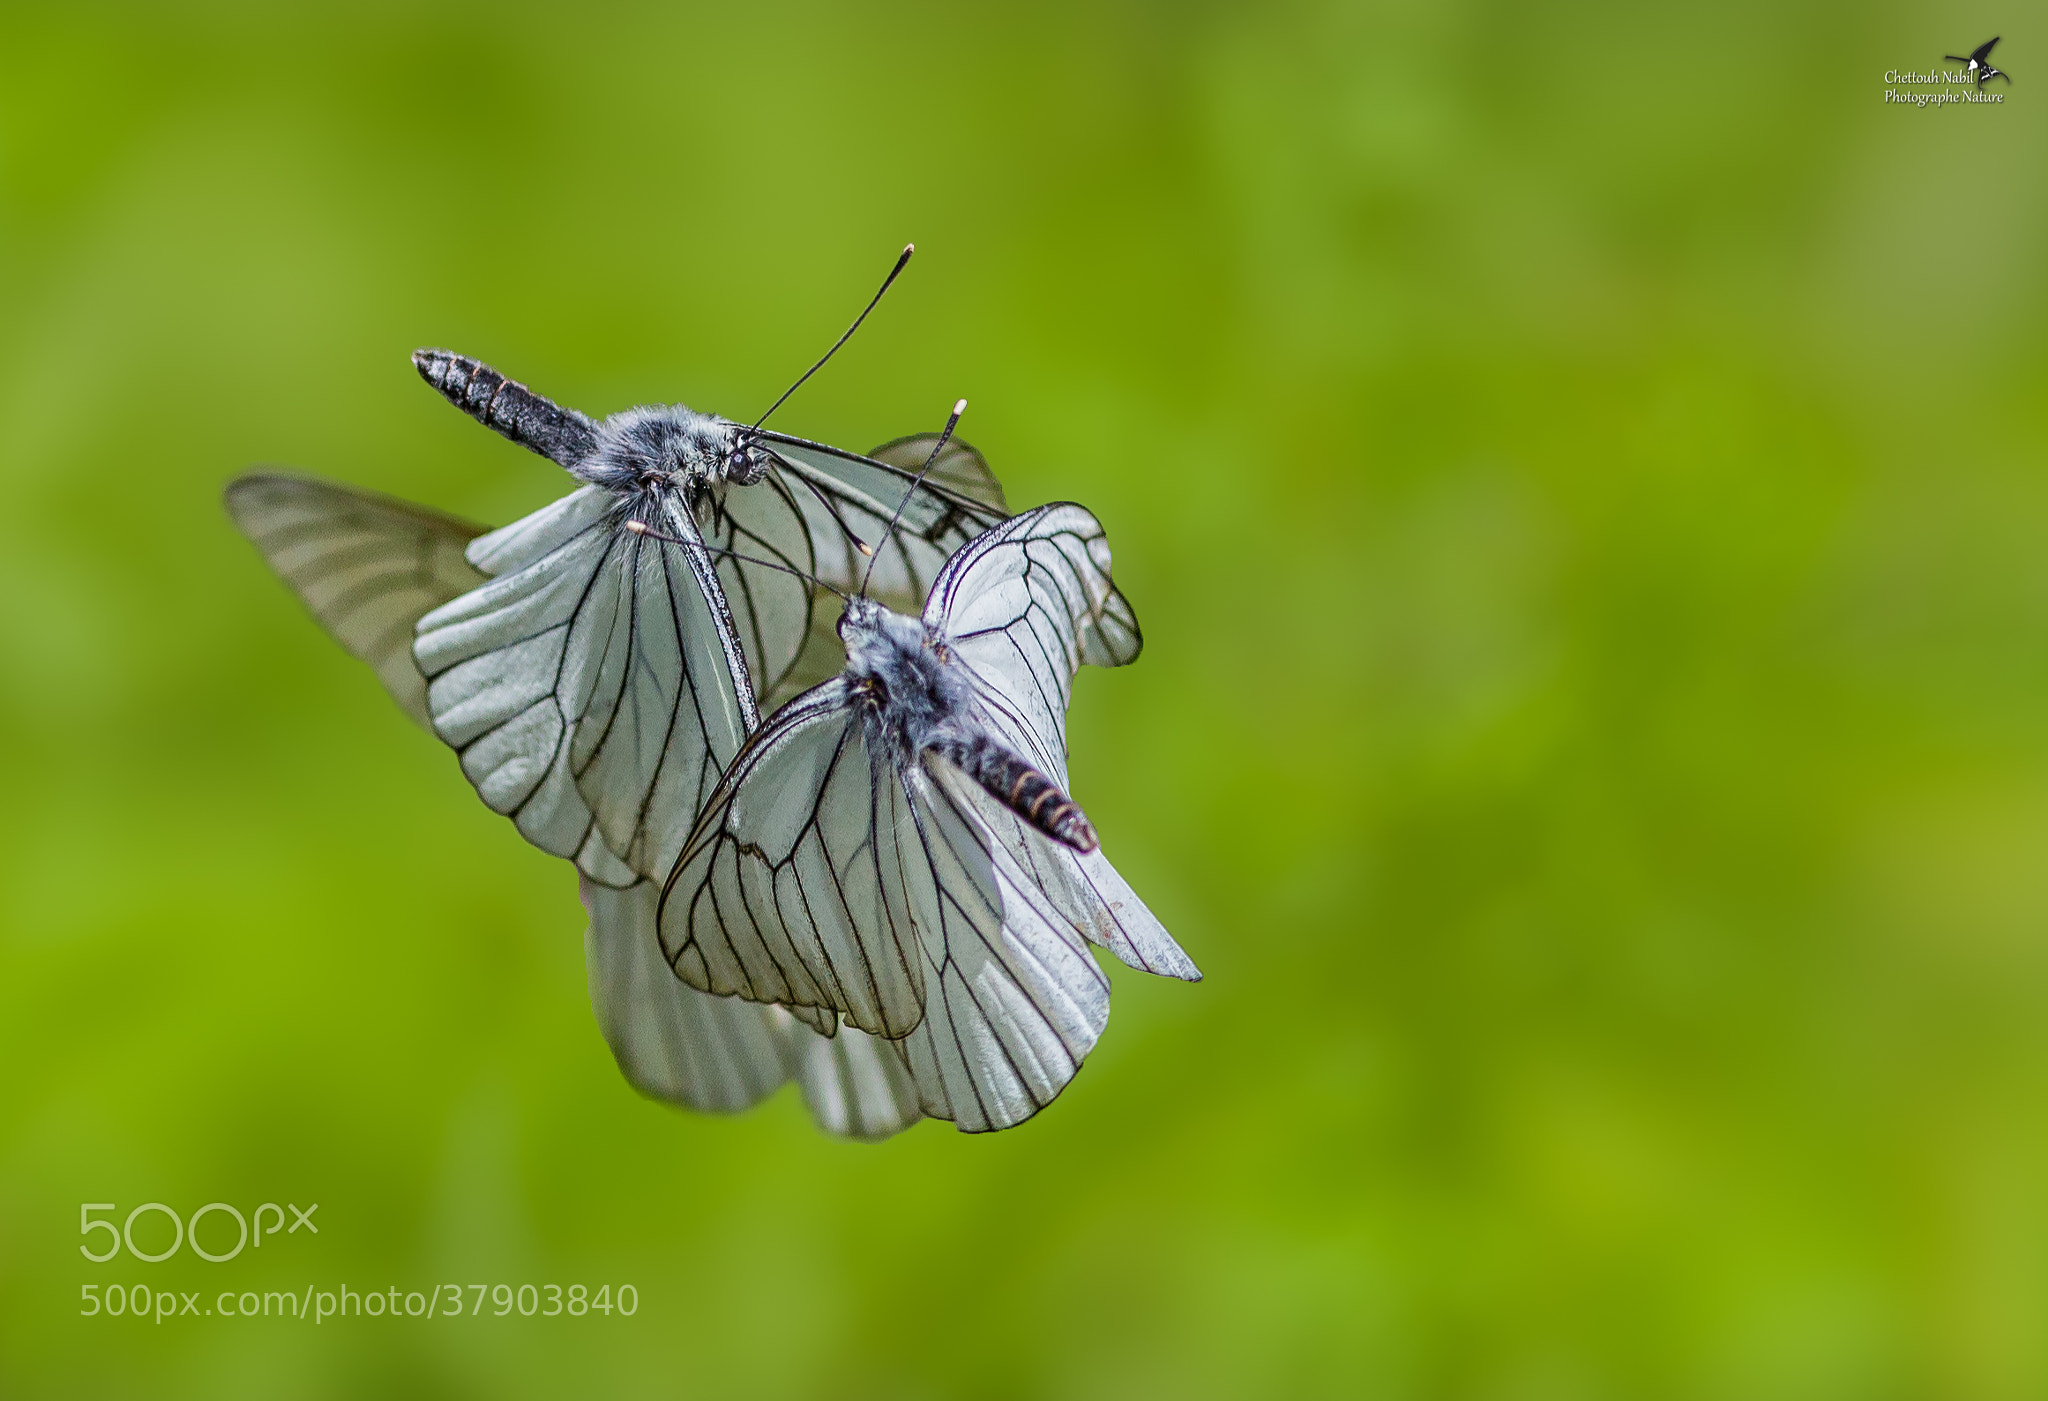 Photograph Butterfly by Nabil CHETTOUH on 500px